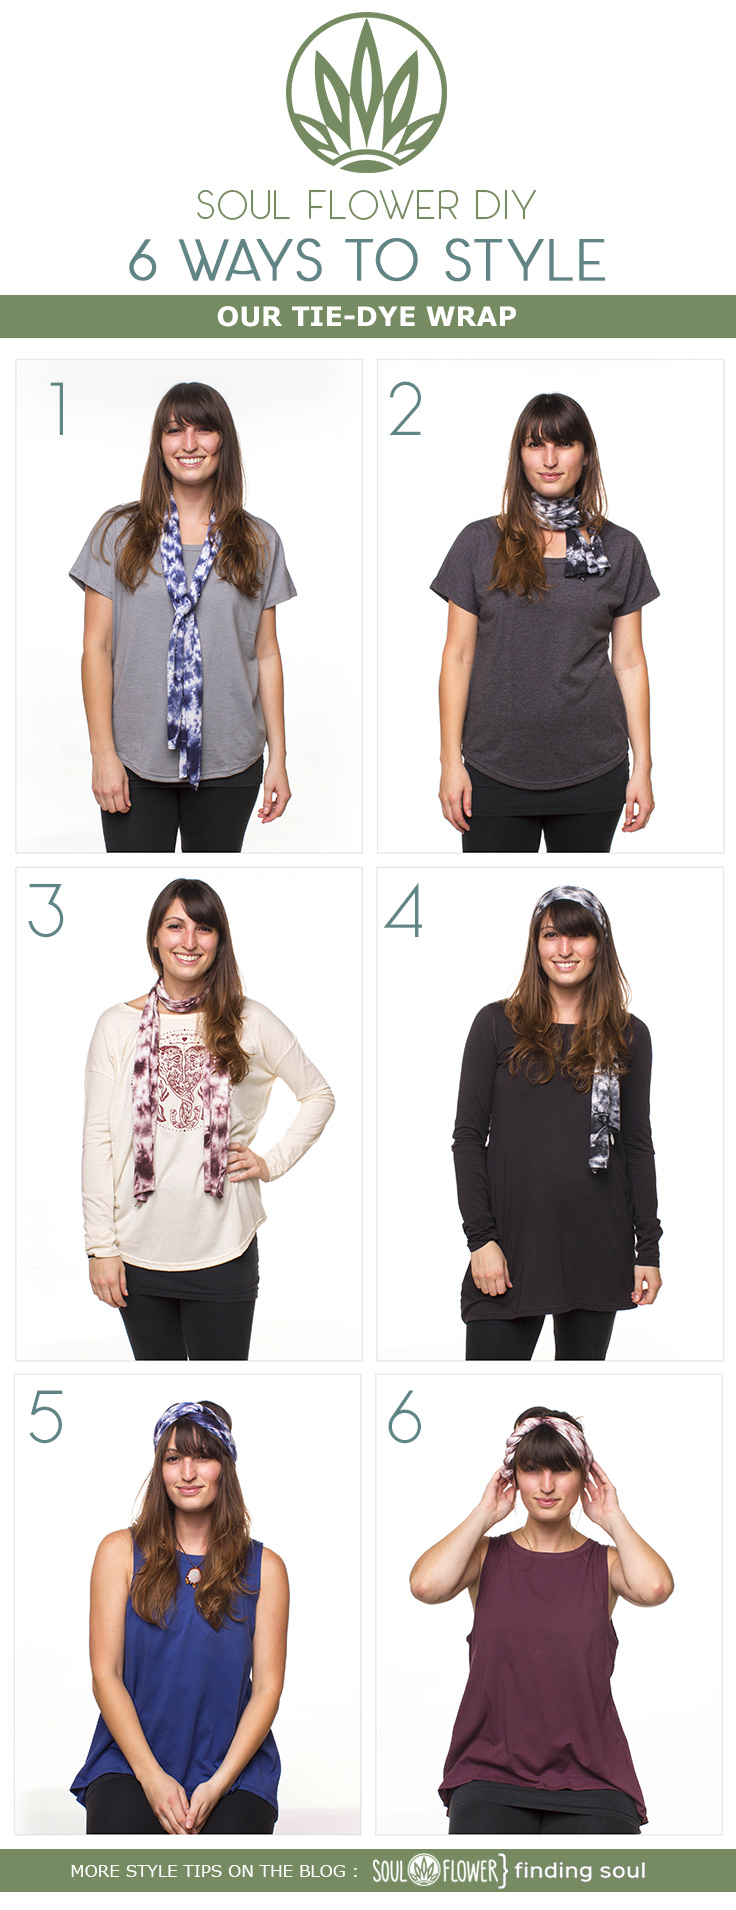 ALL - 6 Ways to Style Our Tie-Dye Wrap